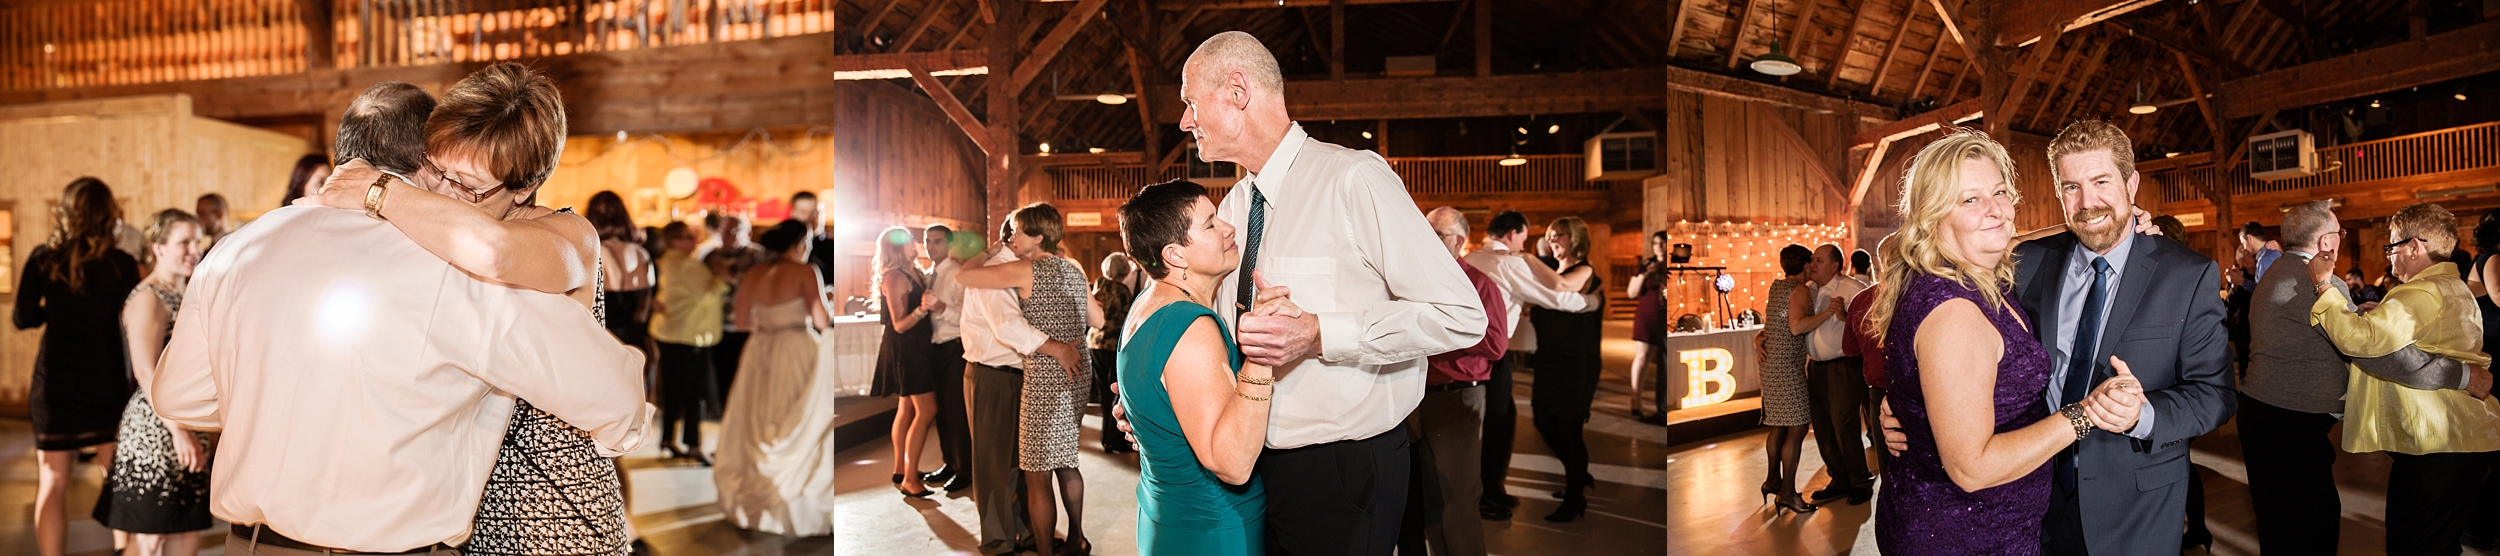 countryheritagebarn-wedding_0102.jpg